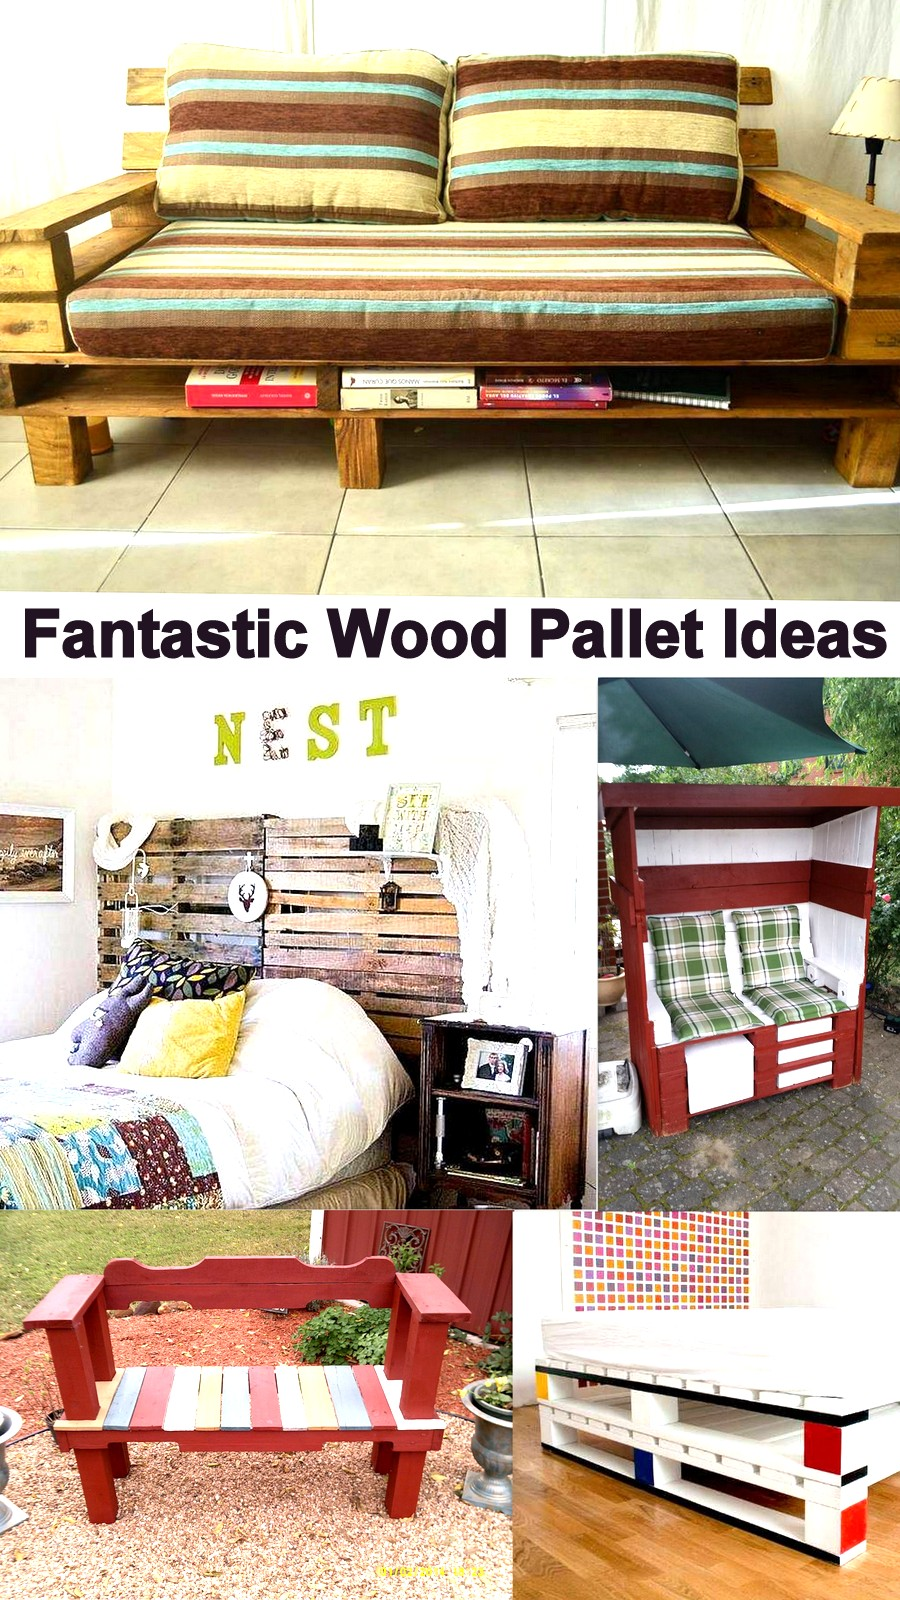 Fantastic Wood Pallet Ideas